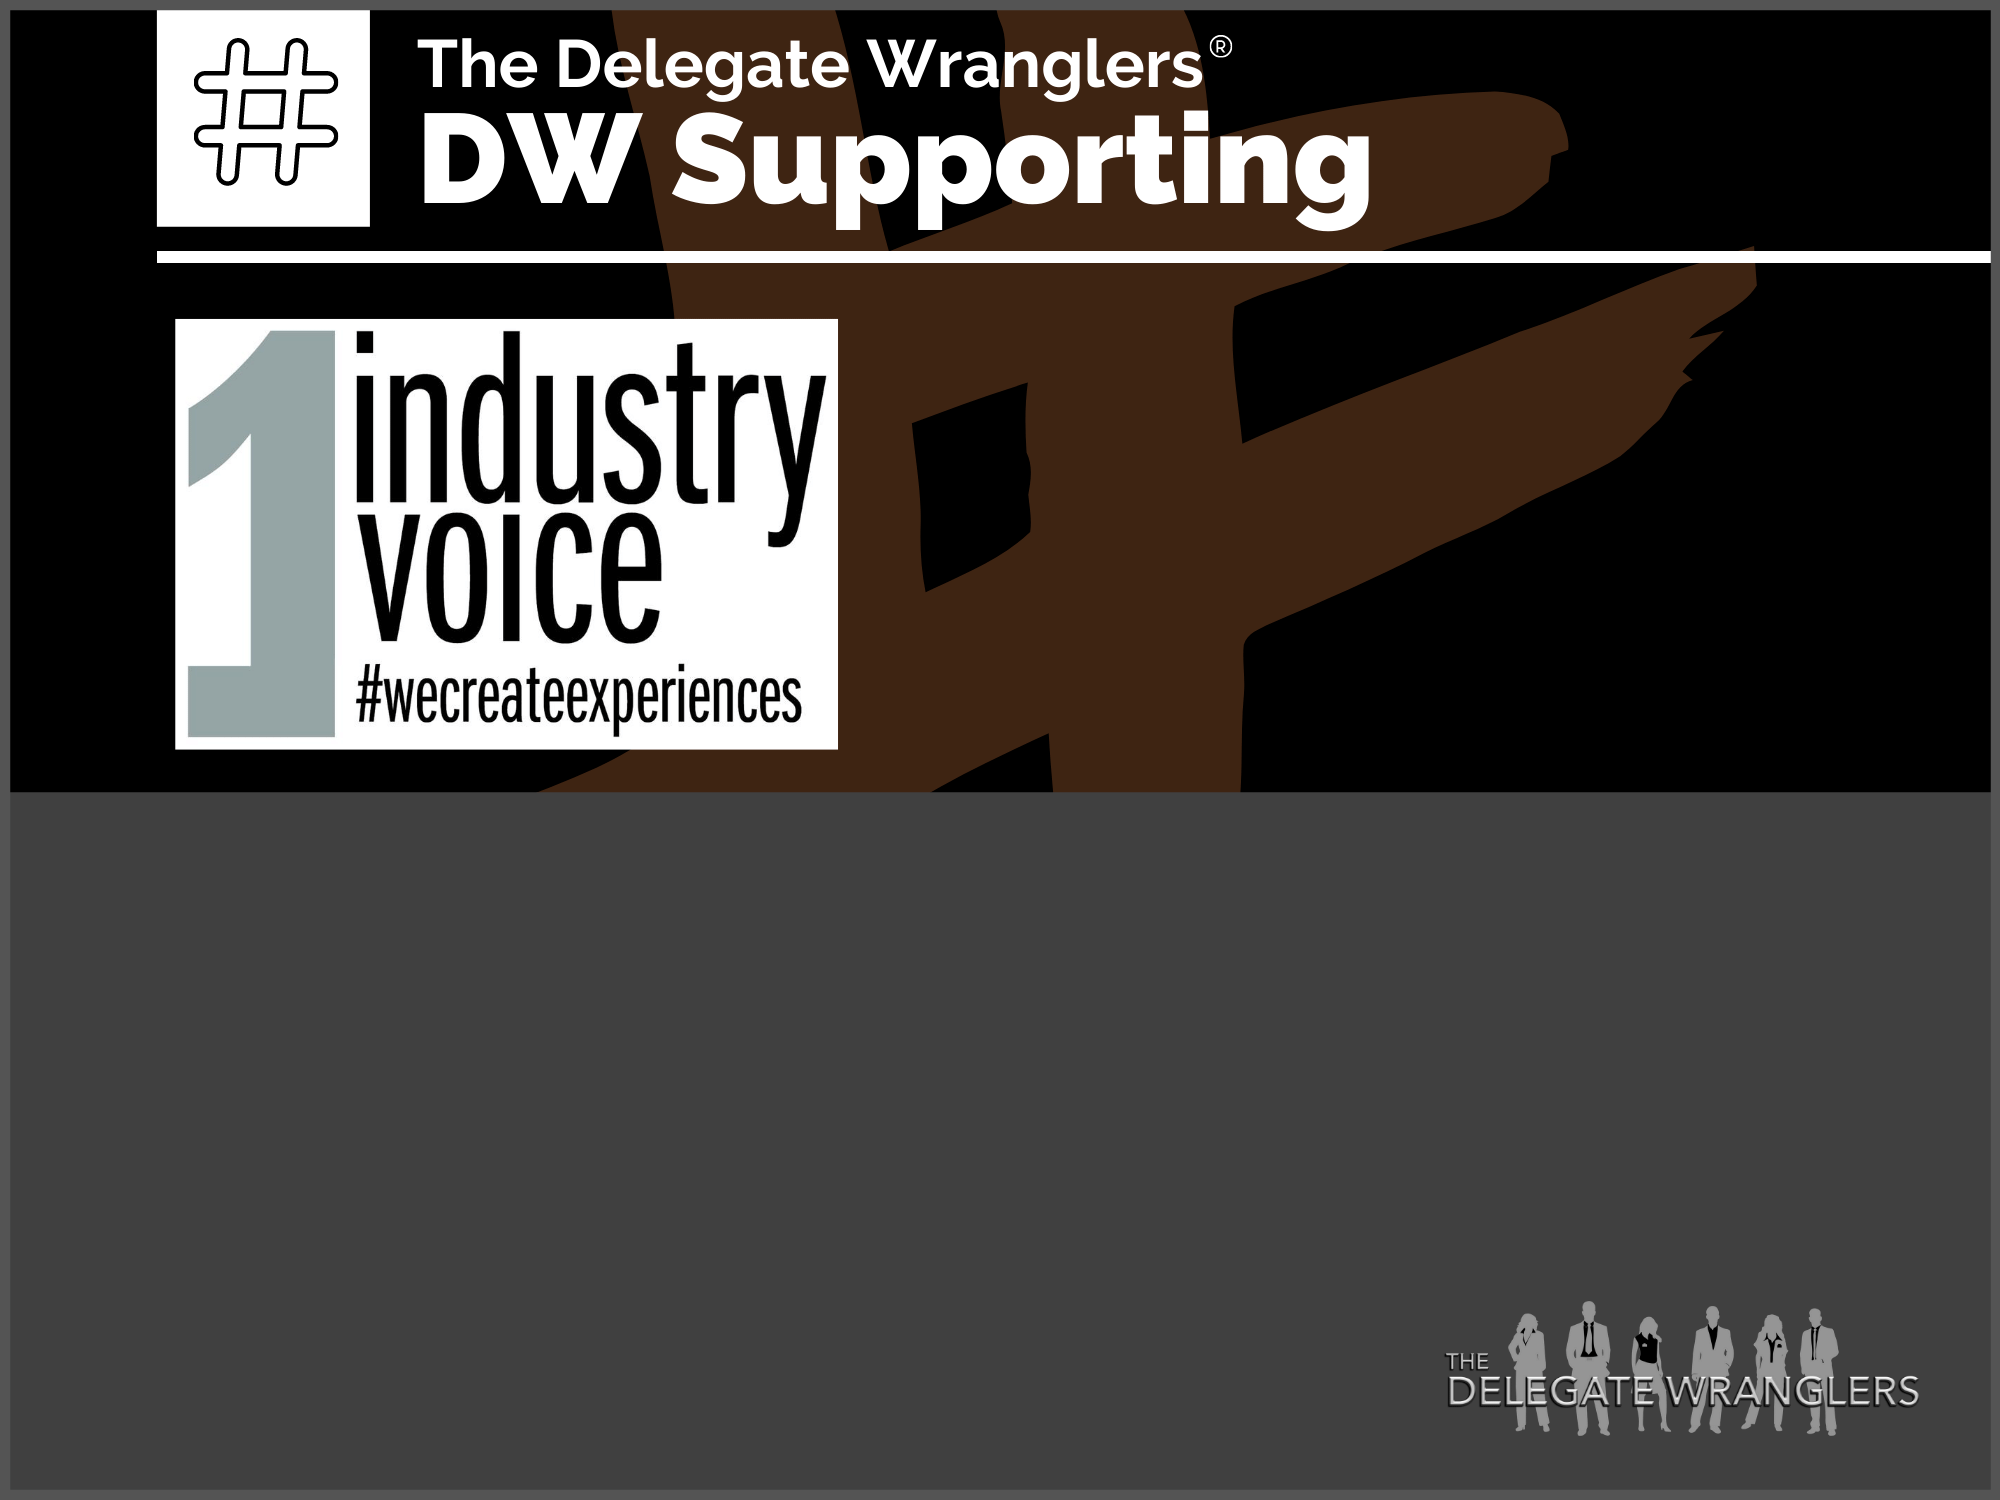 'One industry One Voice' campaign gathering momentum & needs your support